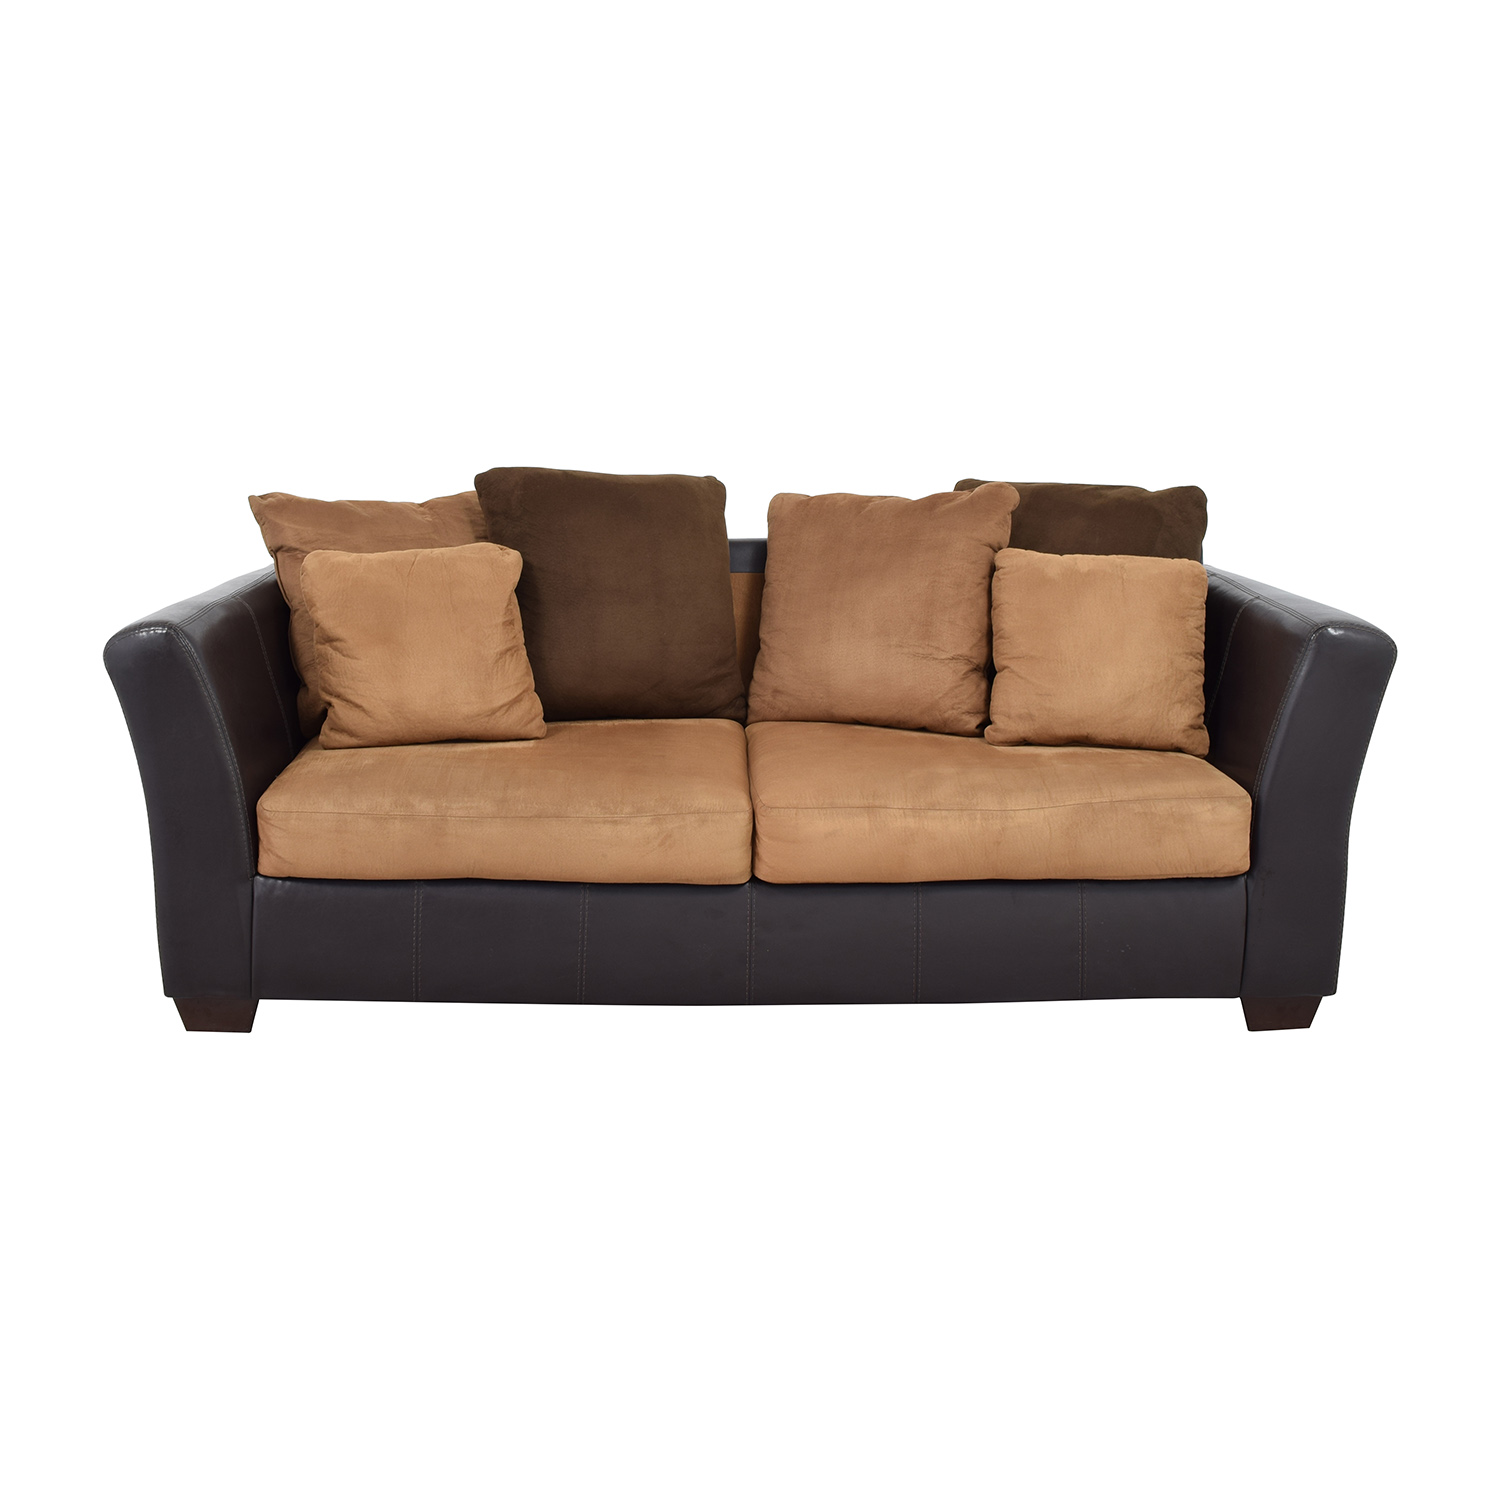 buy Ashley Furniture Sofa with Brown Throw Pillows Ashley Furniture